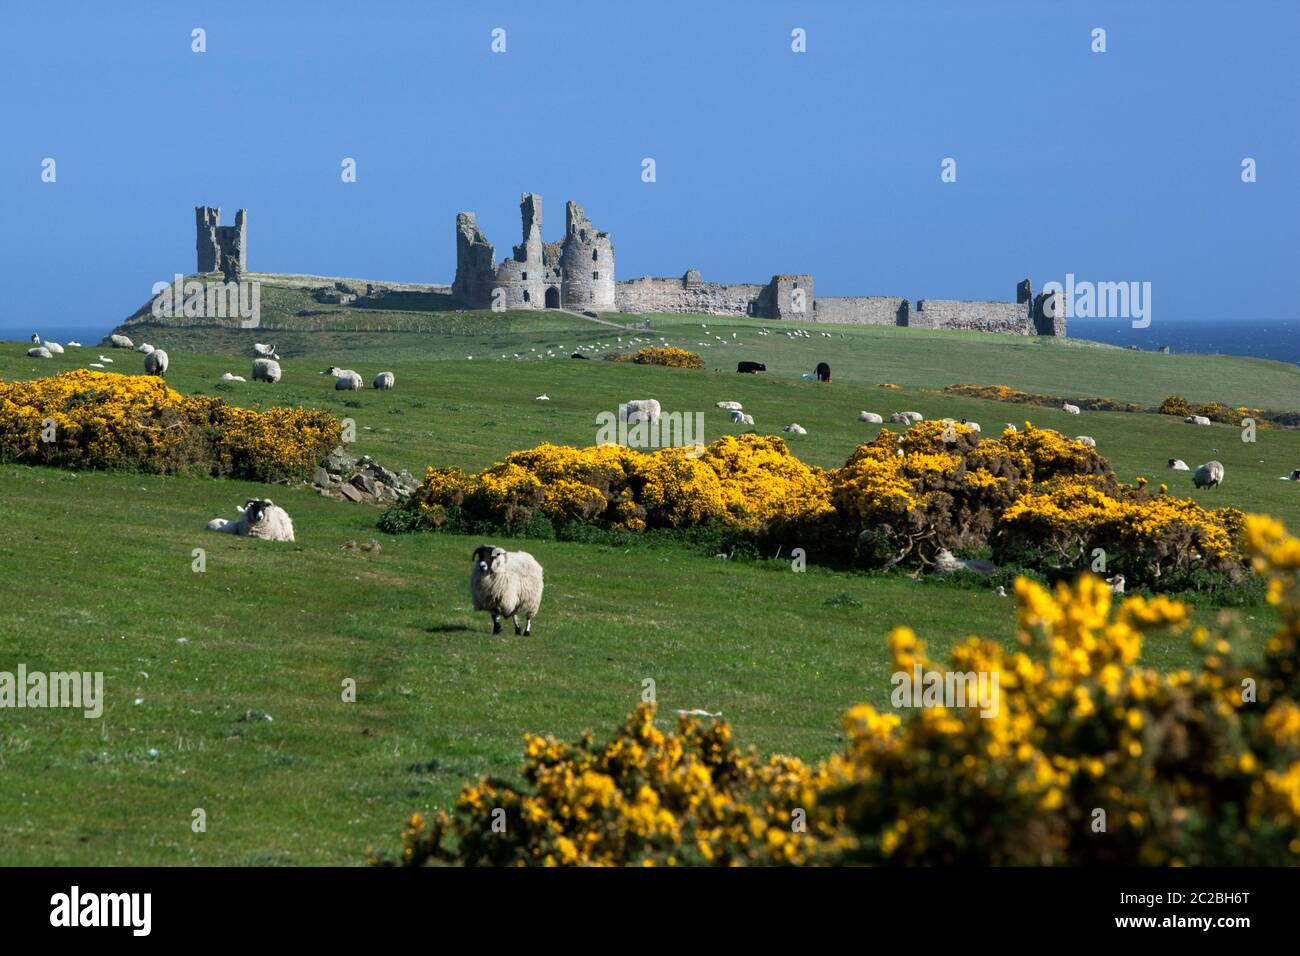 View to ruins of medieval Dunstanburgh Castle with sheep and yellow gorse in meadow, Alnwick, Northumberland, England, United Kingdom, Europe Stock Photo